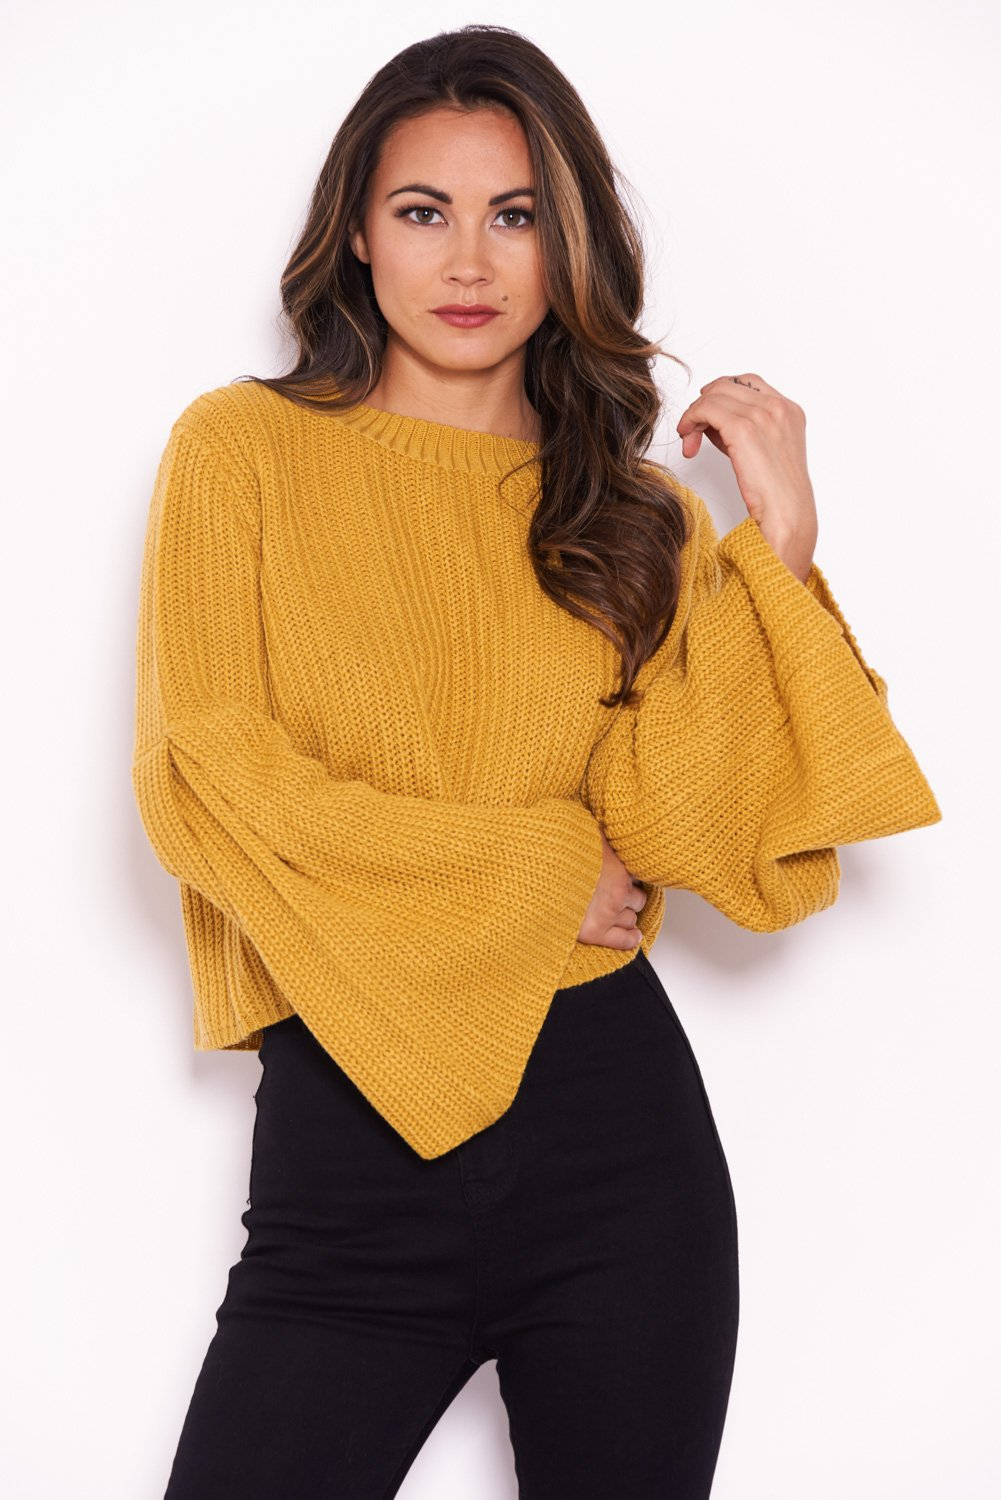 0214e7f8820 AX Paris Womens Mustard Flare Sleeve Knitted Jumper Ladies Casual Knitted  Top